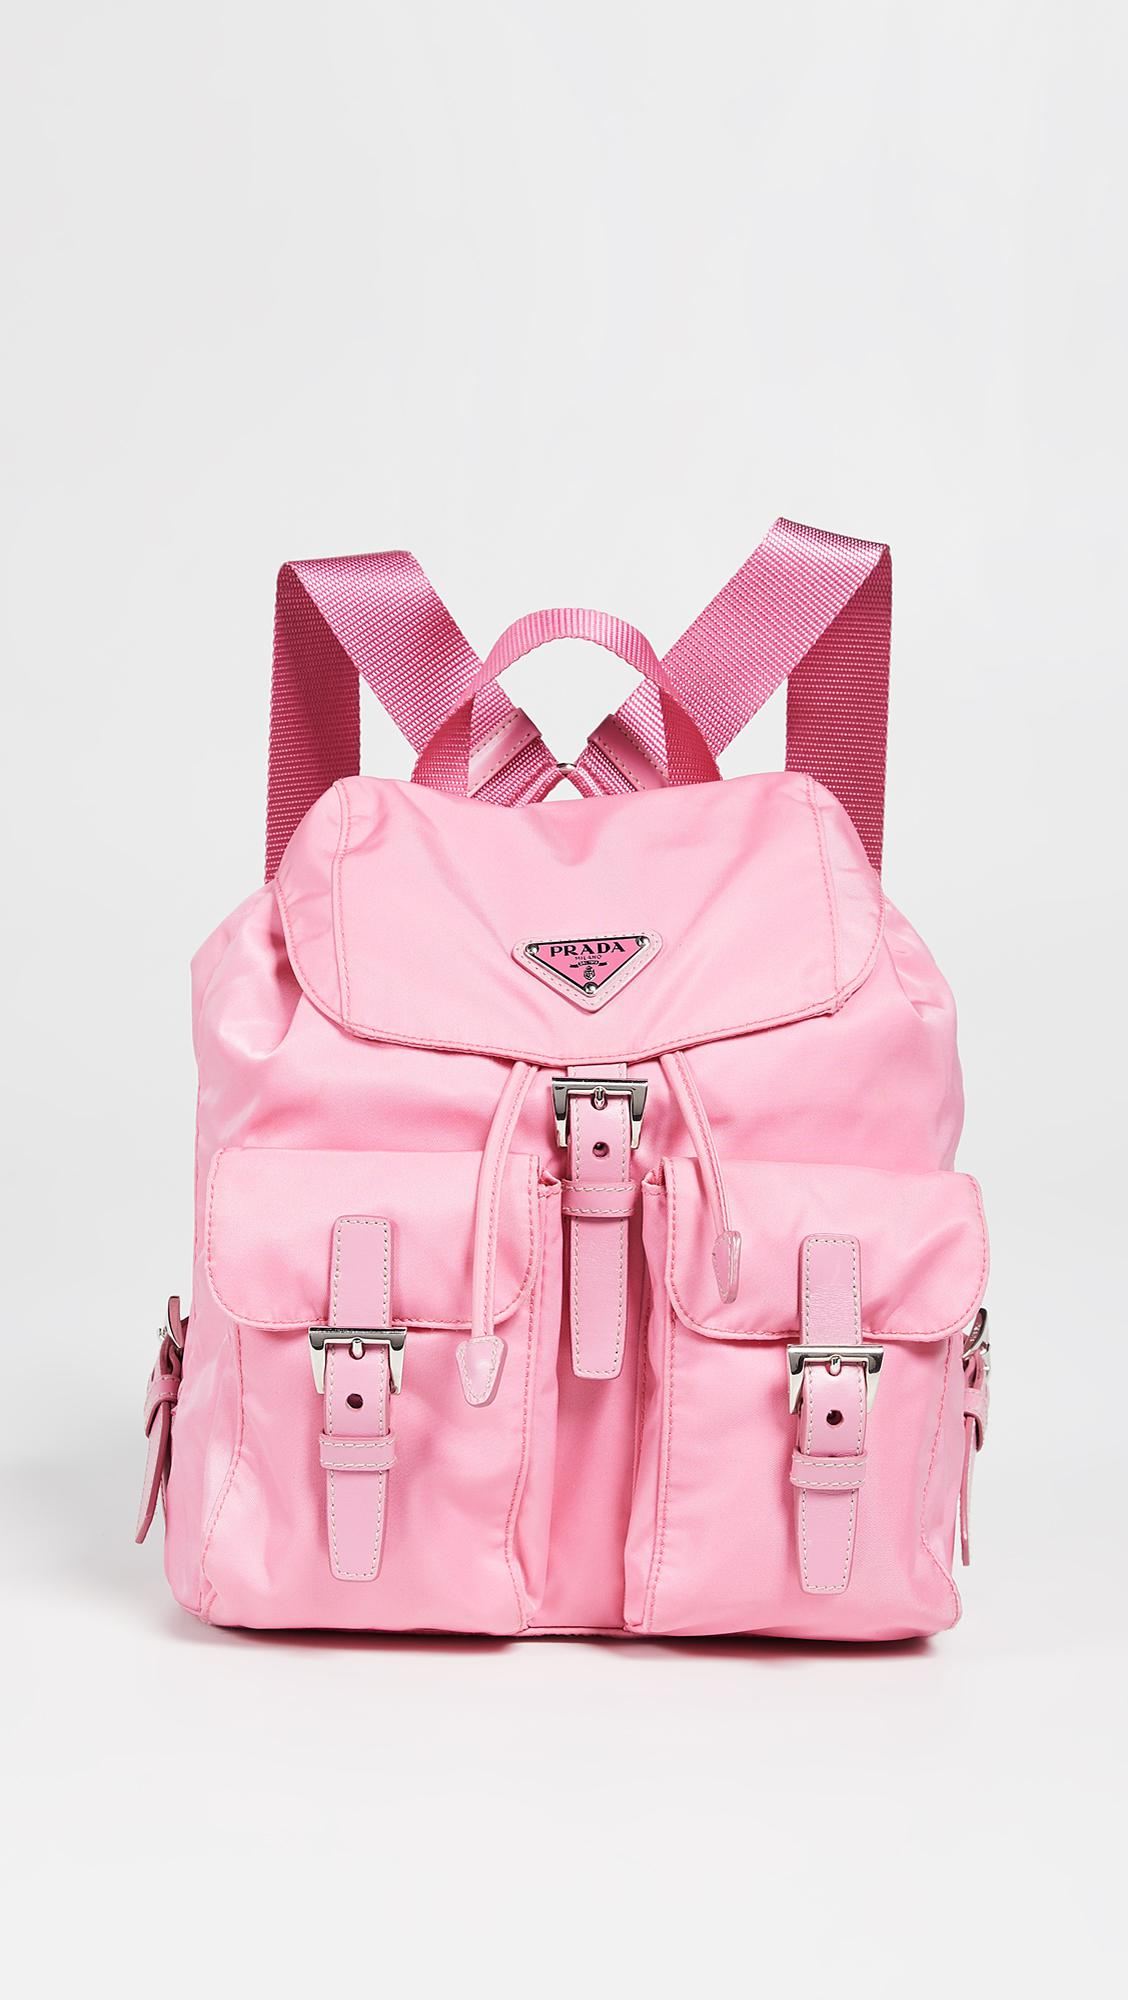 525841efafbc Lyst - What Goes Around Comes Around Prada Pink Nylon Backpack in Pink